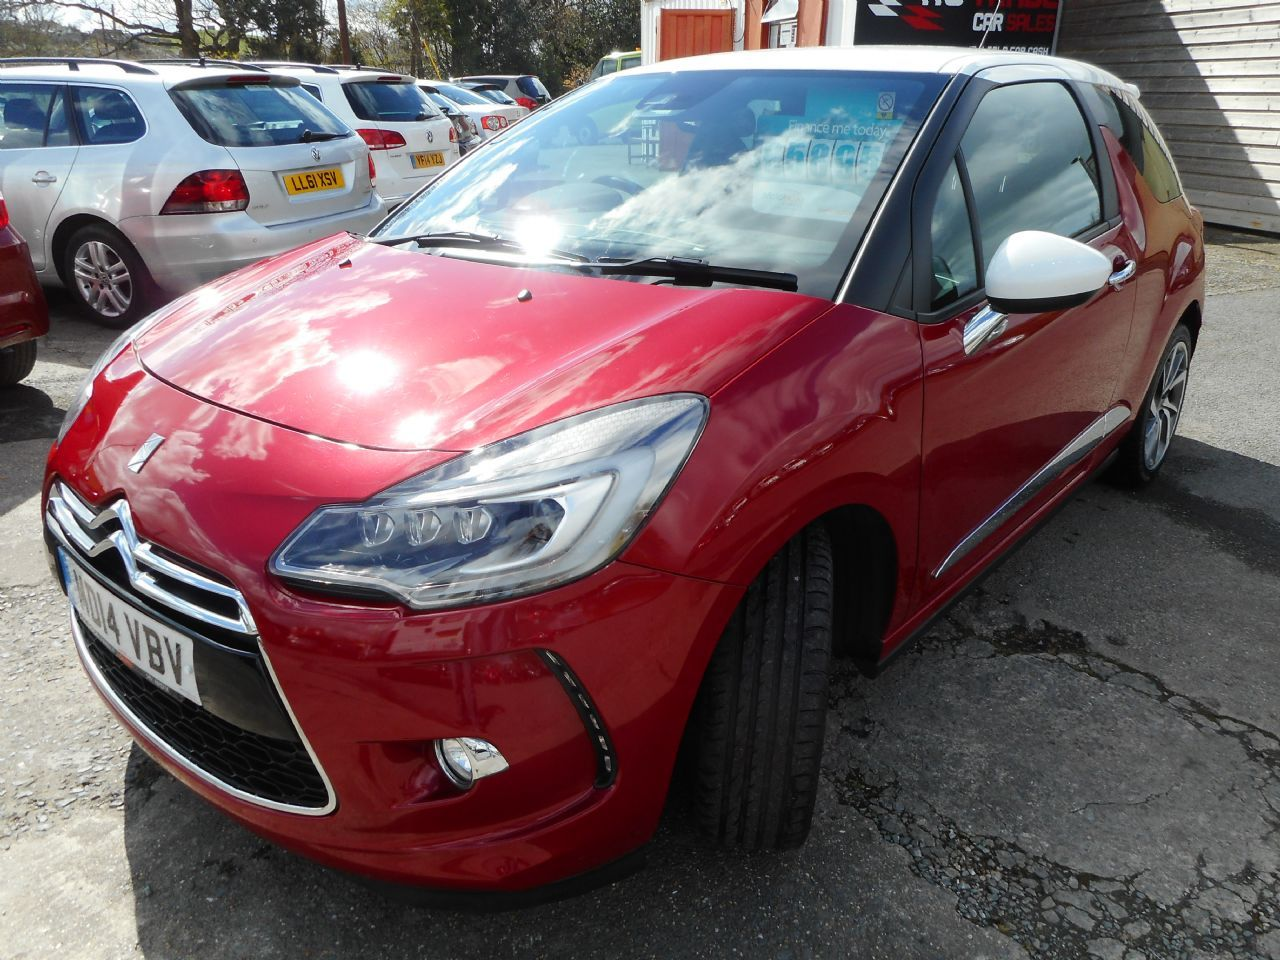 CITROEN DS3 DStyle Techno THP 155 6-speed (2014) - Picture 7